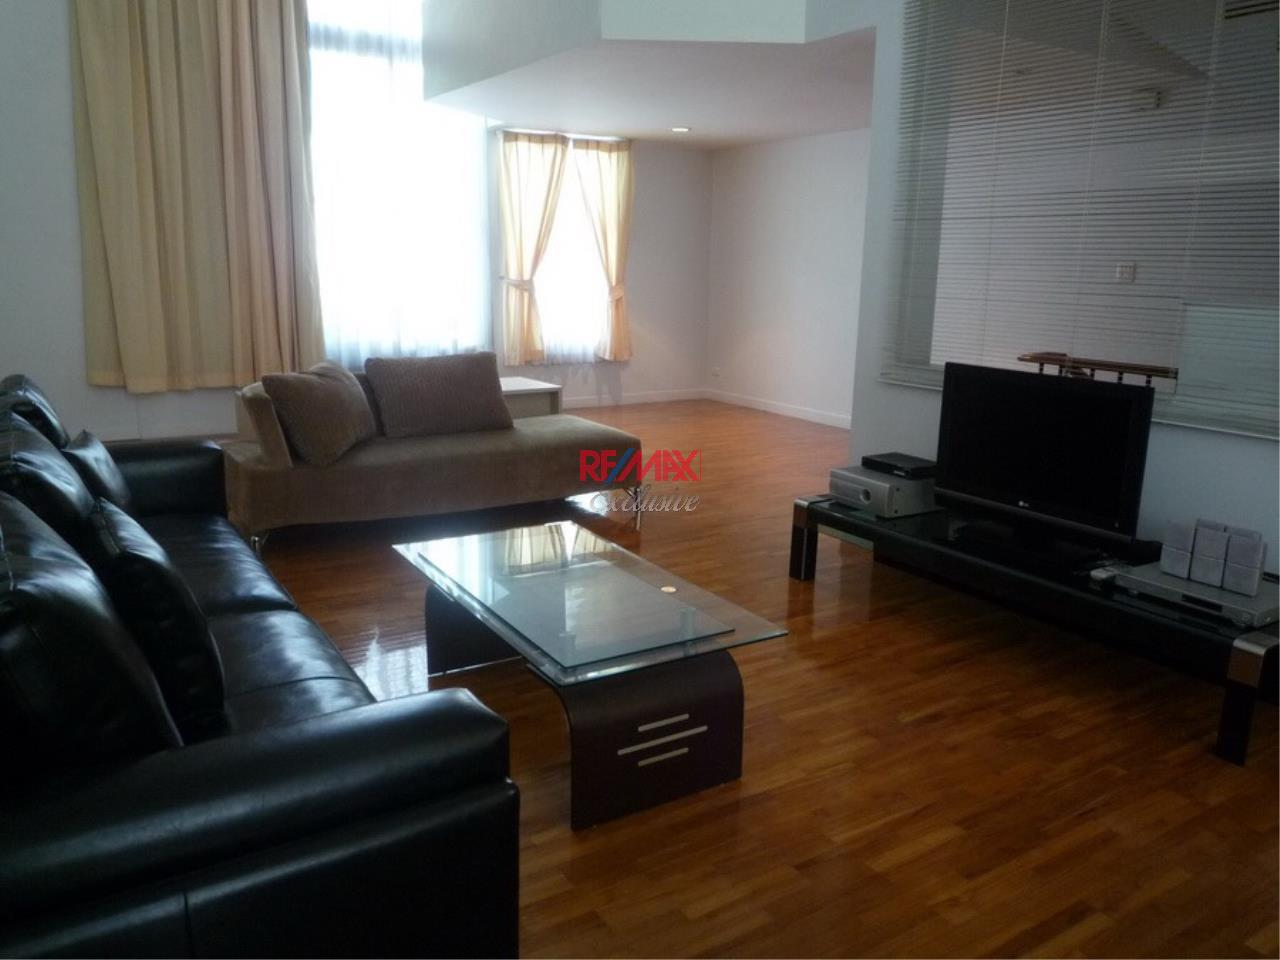 RE/MAX Exclusive Agency's Baan Klang Krung Thonglor 4 Bedrooms, 350 SQM., For Rent! 1